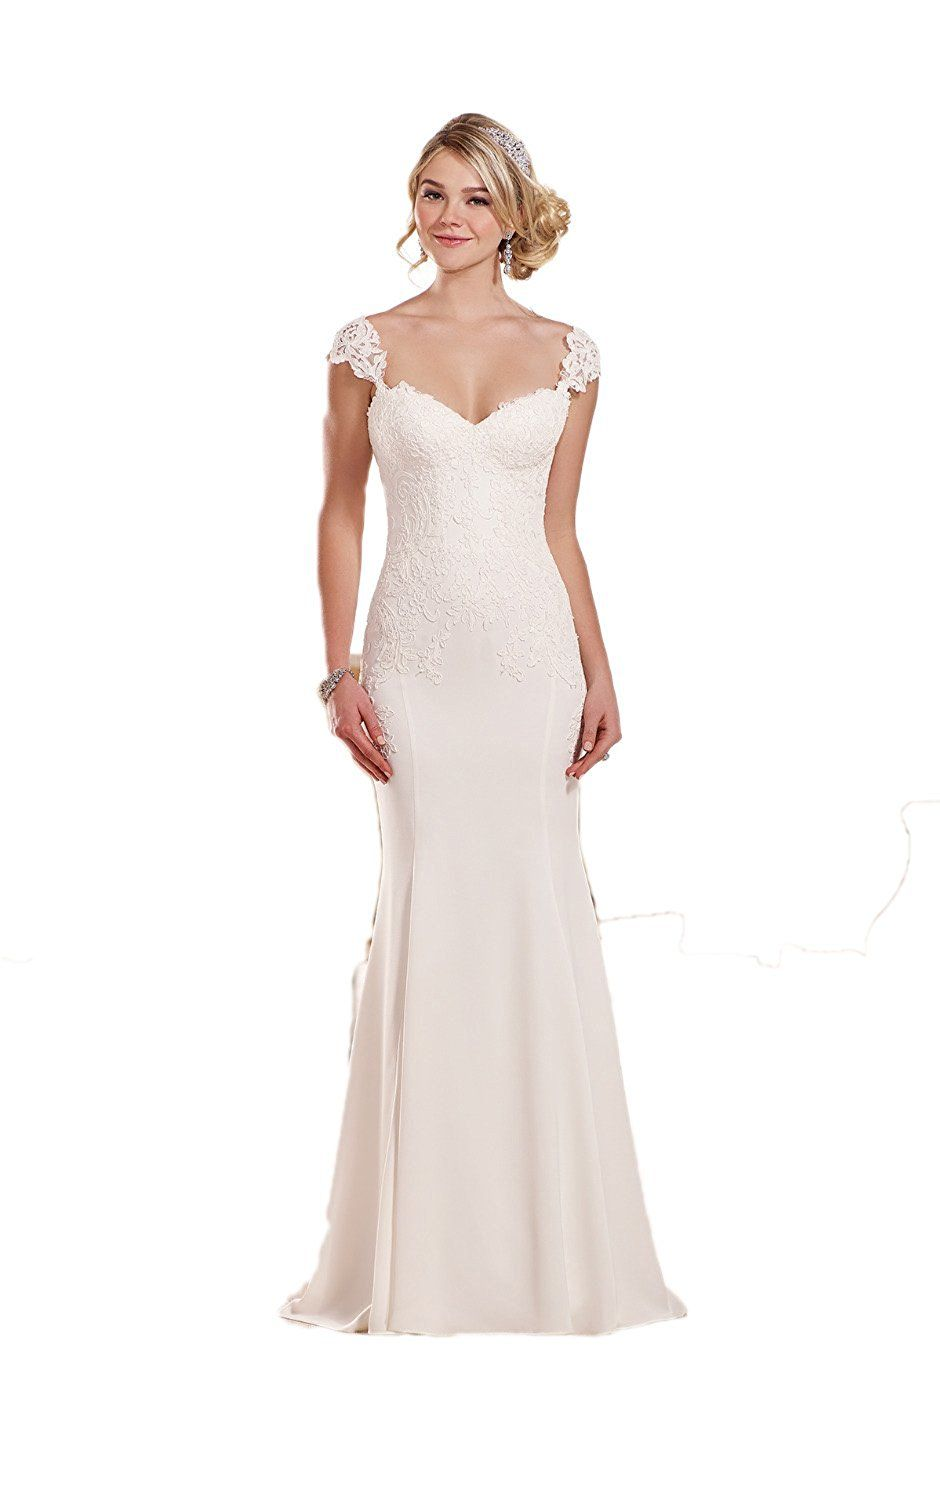 Mermaid wedding dresses with sleeves  Kaitaijidian Womenus Sexy Lace Cap Sleeve Sweetheart Long Mermaid